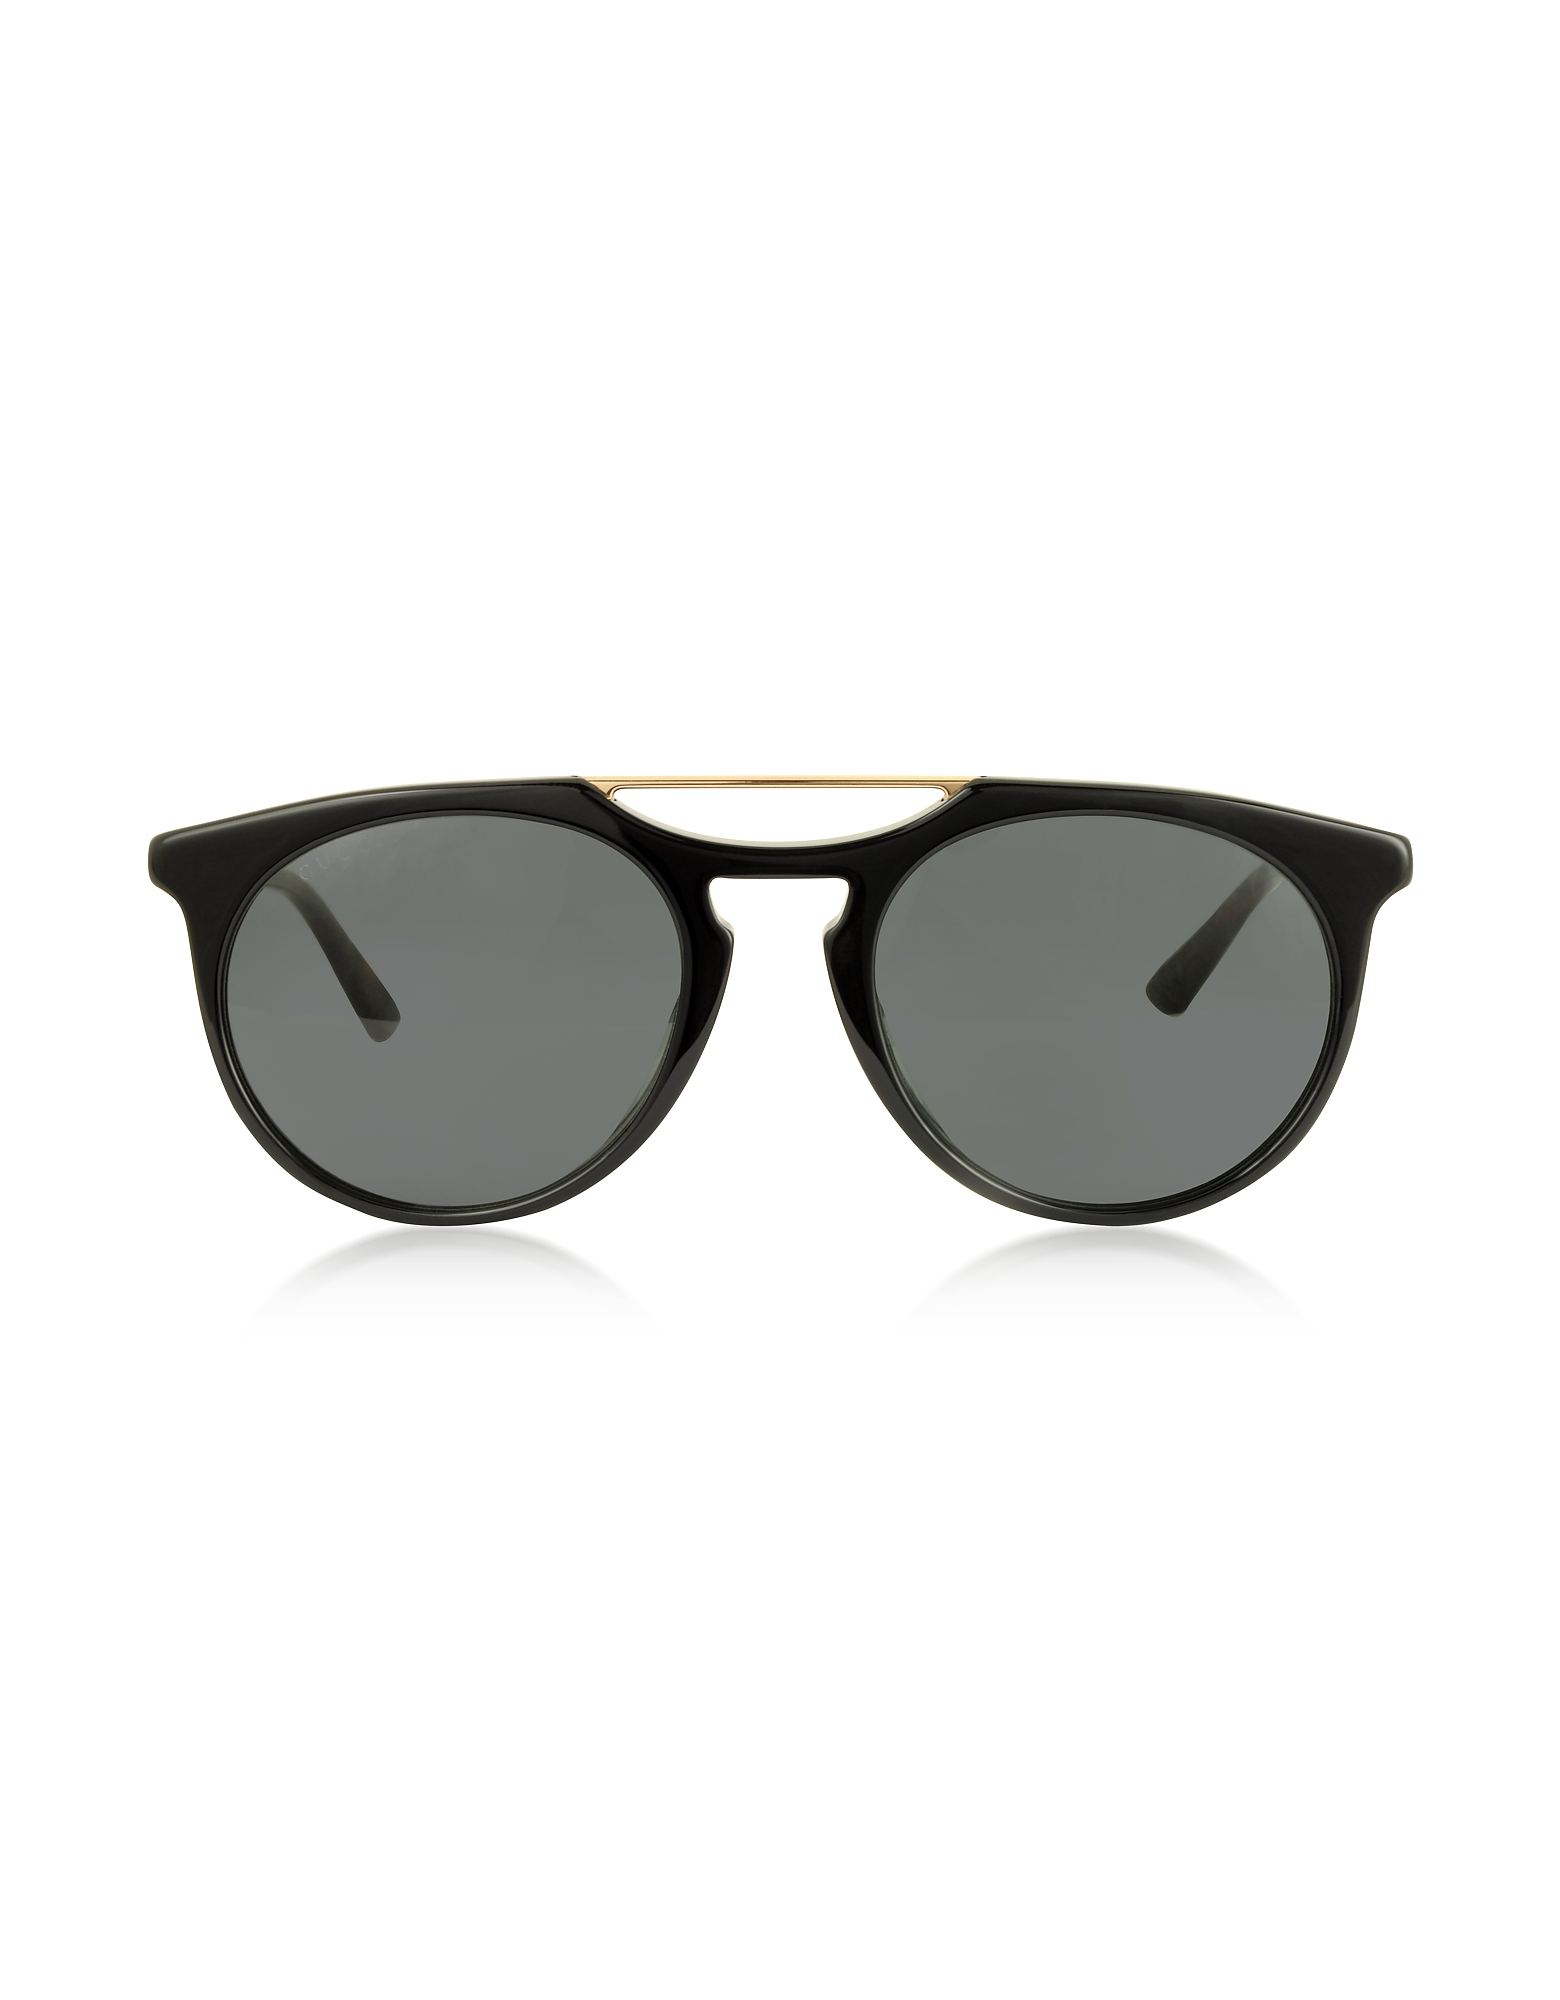 Gucci Sunglasses, GG0320S Round-frame Acetate Sunglasses